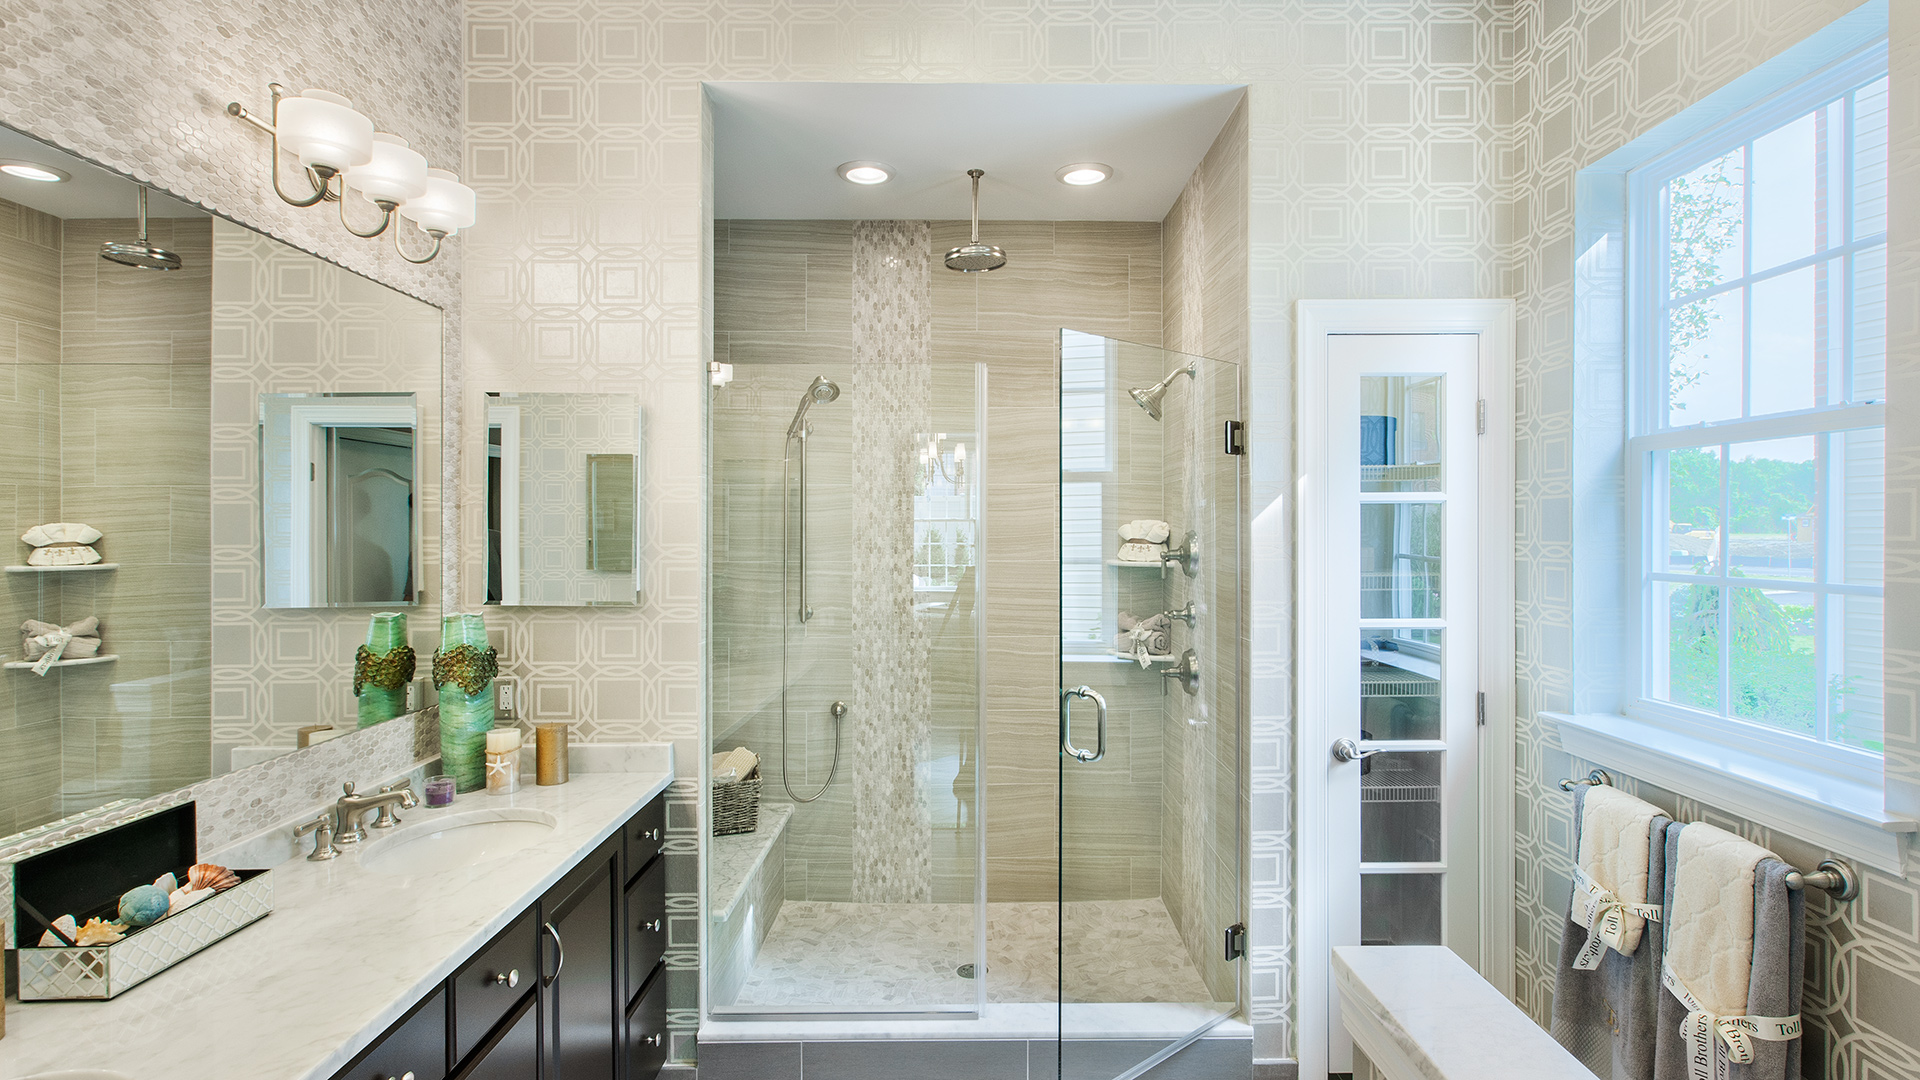 Bathroom inspiration gallery toll brothers luxury homes - Bathroom designs for home ...